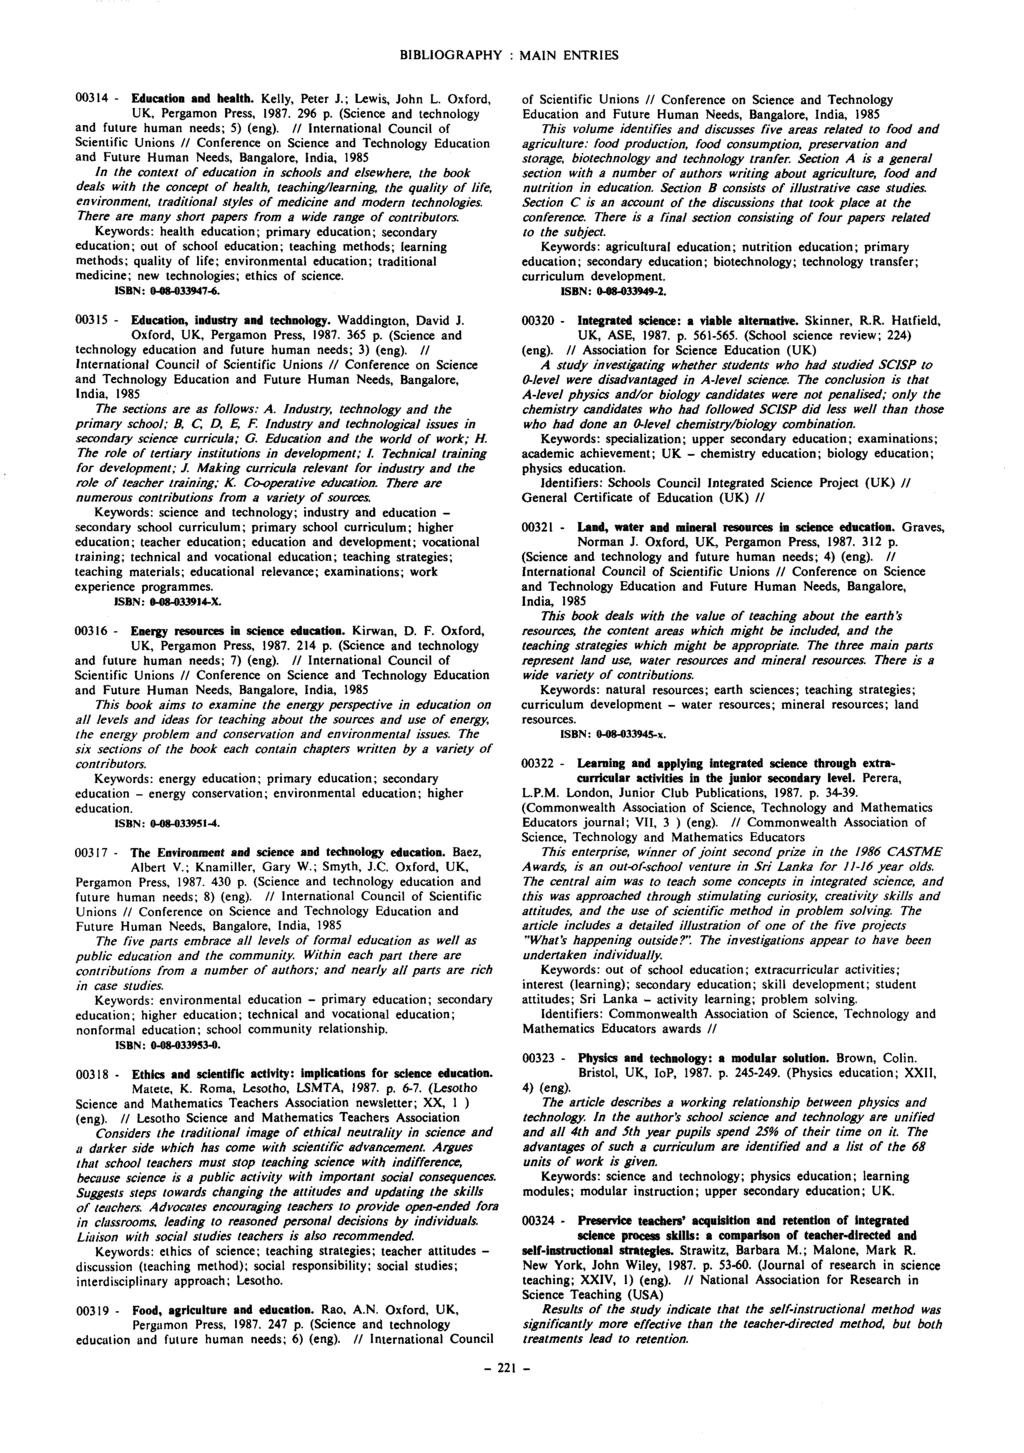 BIBLIOGRAPHY : MAlN ENTRIES 00314 - Education and health. Kelly, Peter J.; Lewis, John L. Oxford, UK, Pergamon Press, 1987. 296 p. (Science and technology and future human needs; 5) (eng).